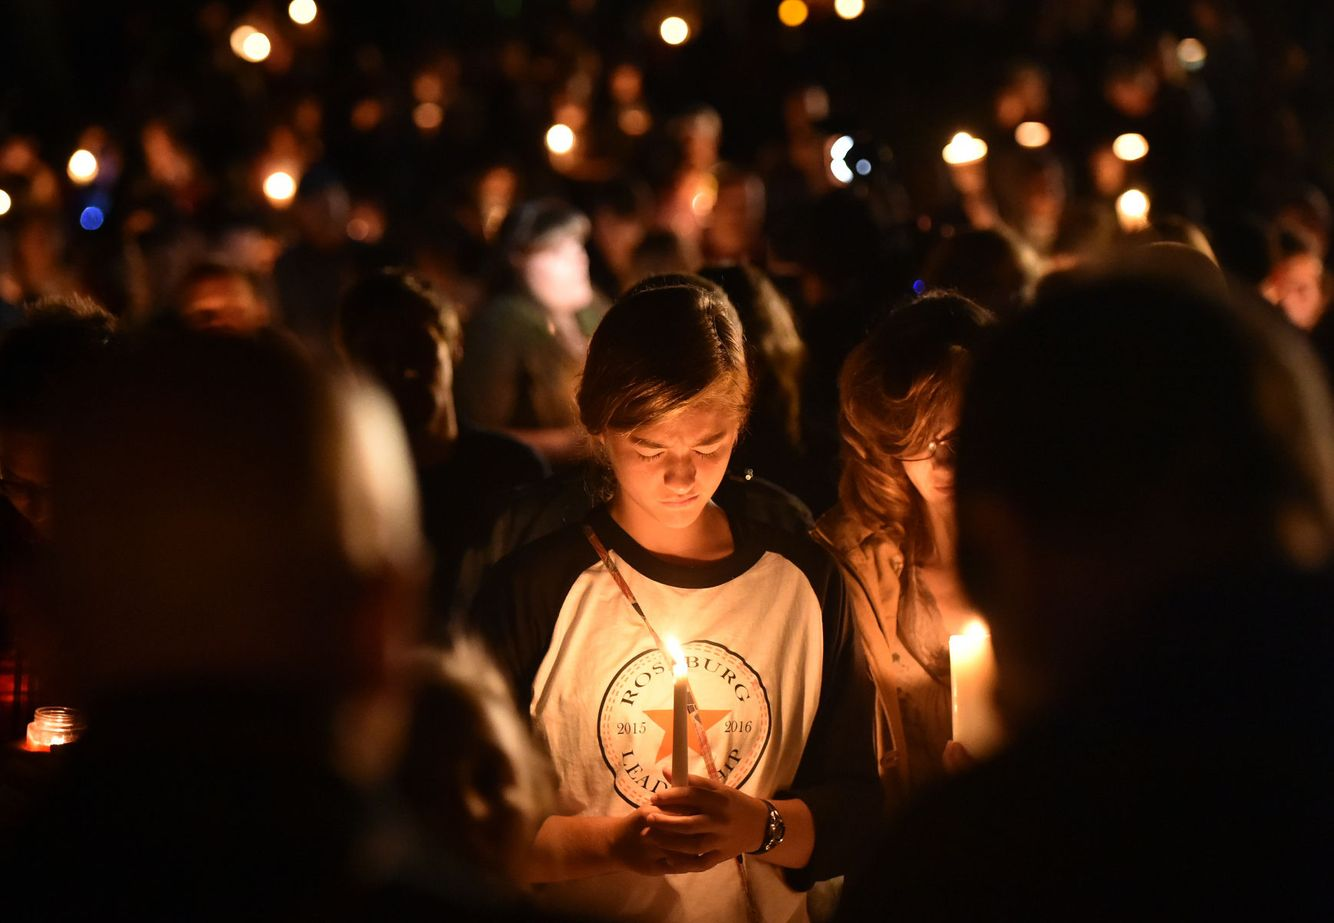 MASS SHOOTING: A girl weeps during a vigil for victims killed in Roseberg, Oregon